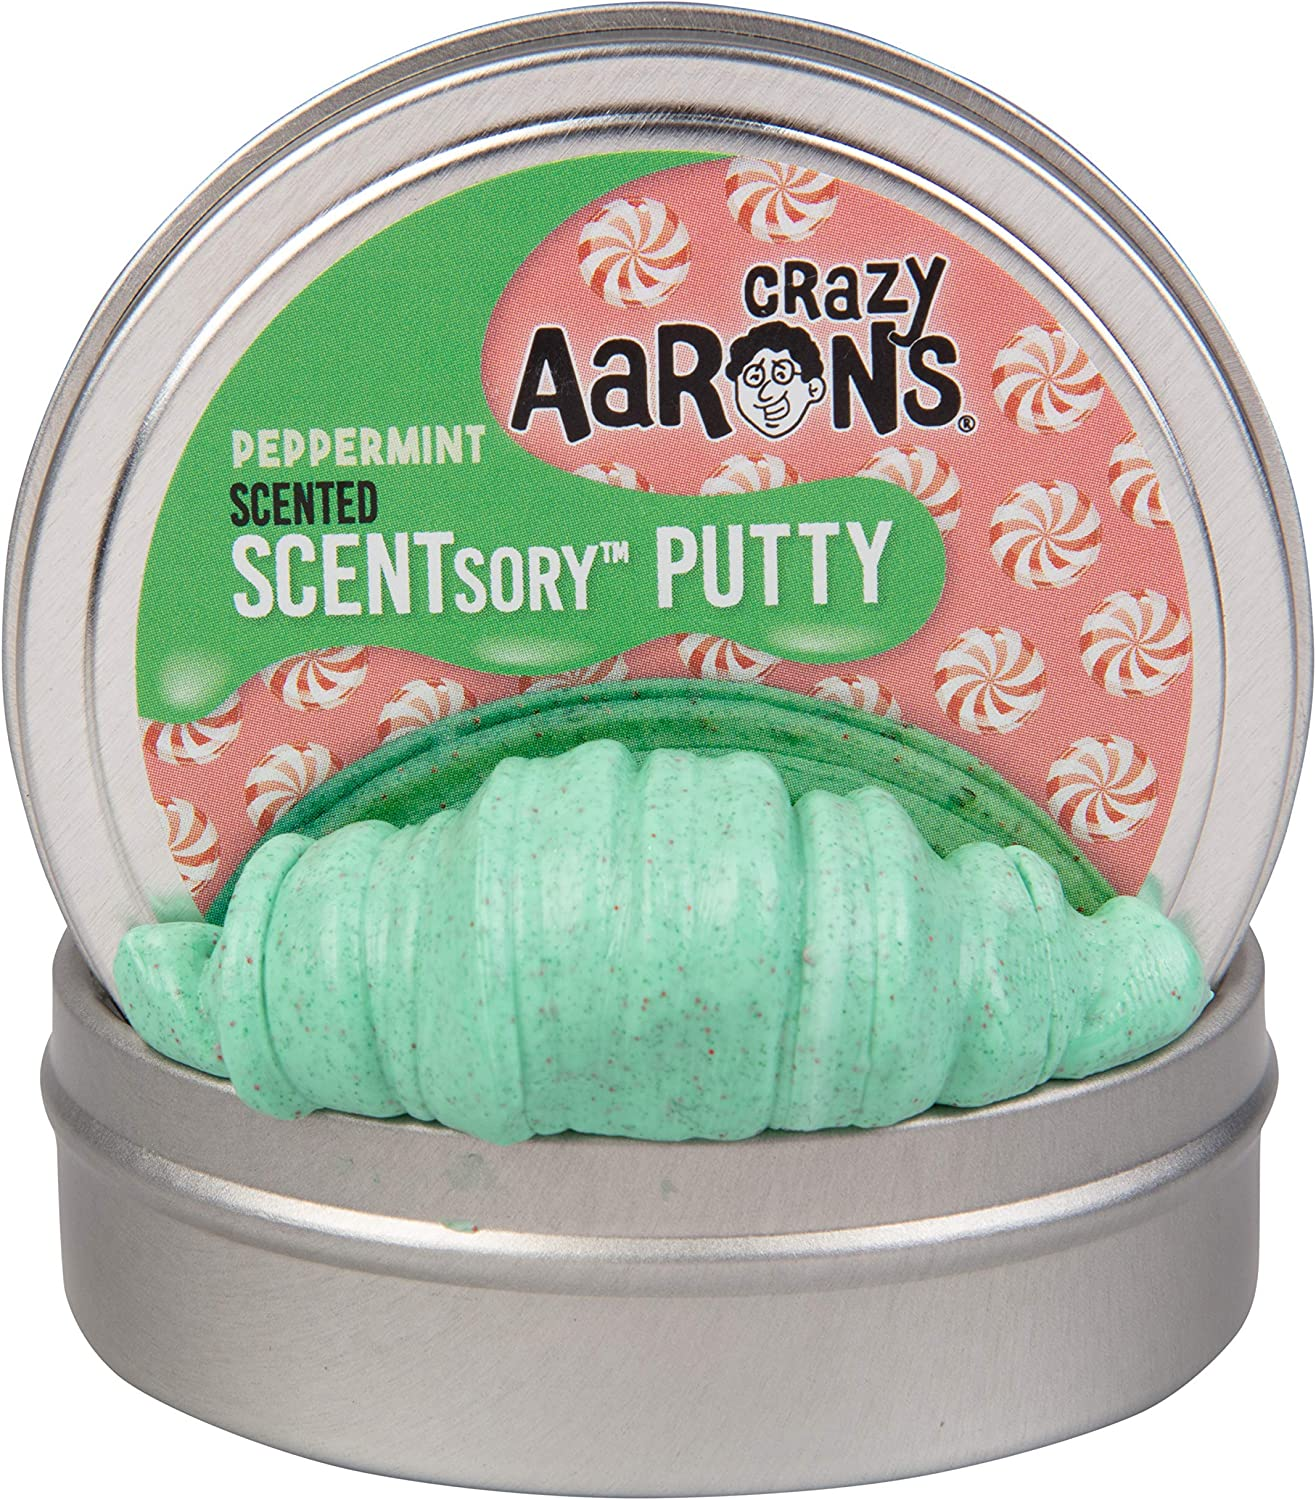 "Crazy Aaron's Holiday Scented Thinking Putty 2.75"" Tin (1.2 oz) - Holiday (Christmas) Edition - Wintermint - Never Dries Out"